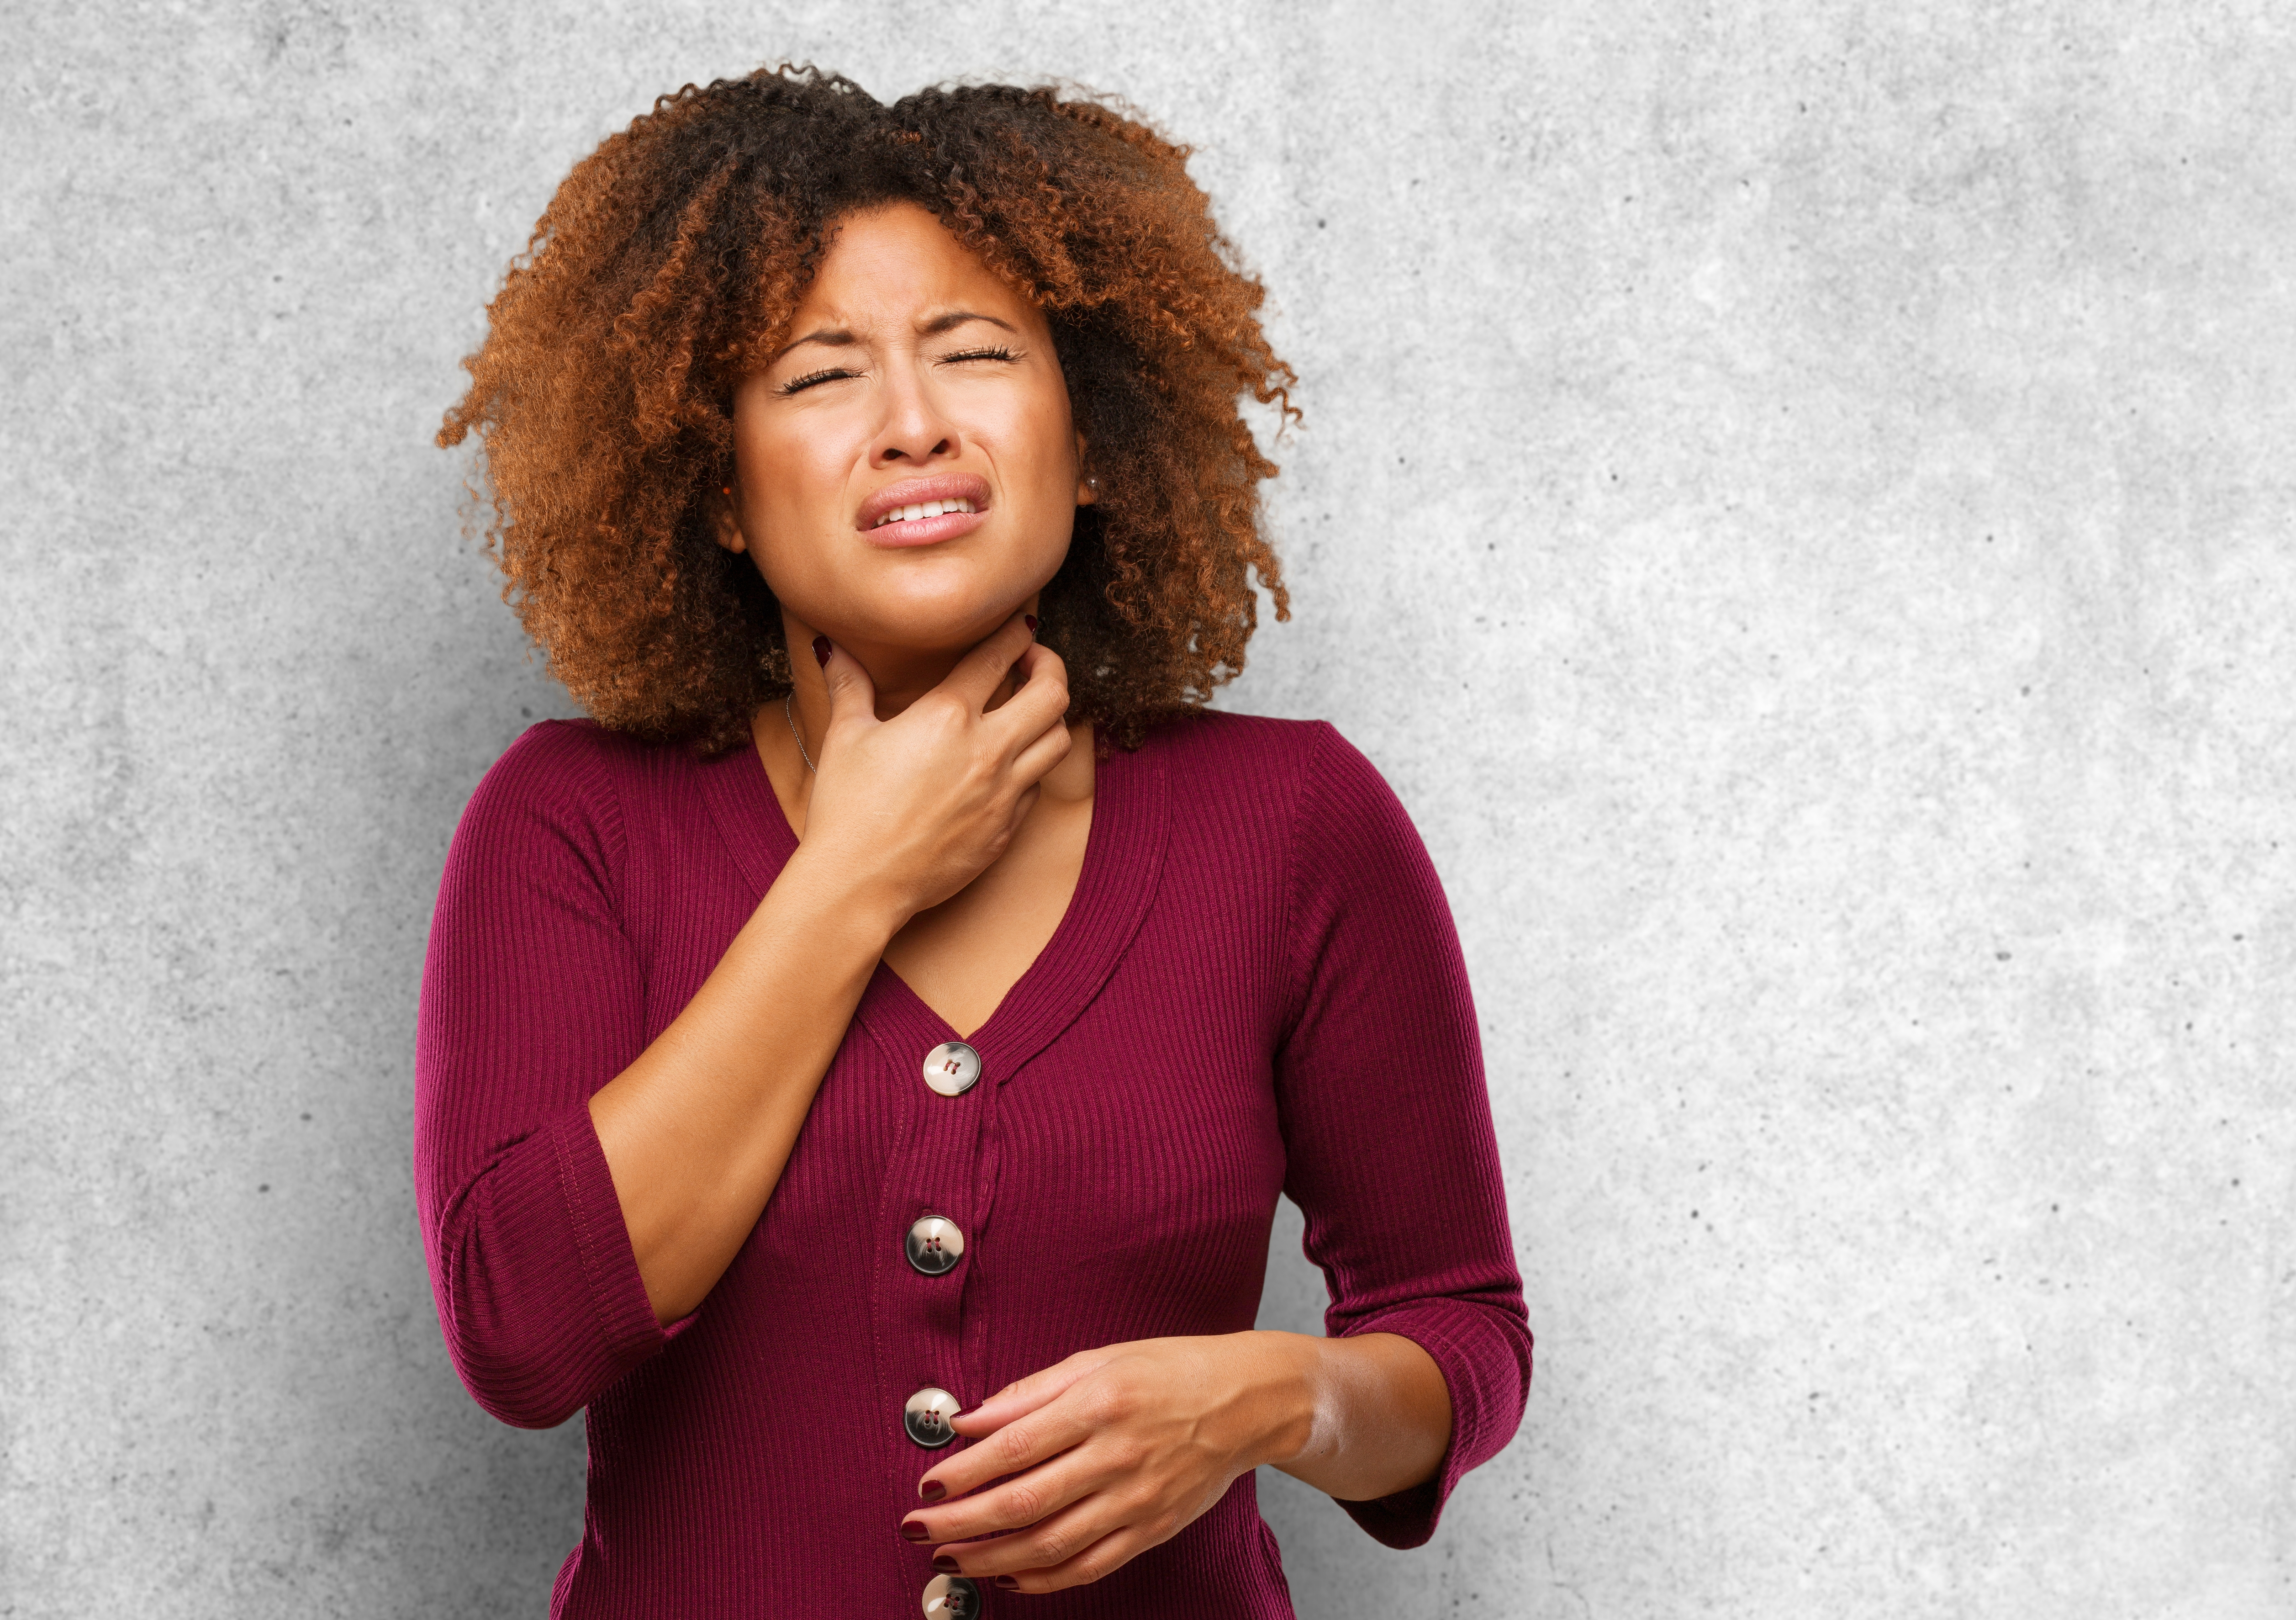 Constant Throat Clearing: Causes, Solutions